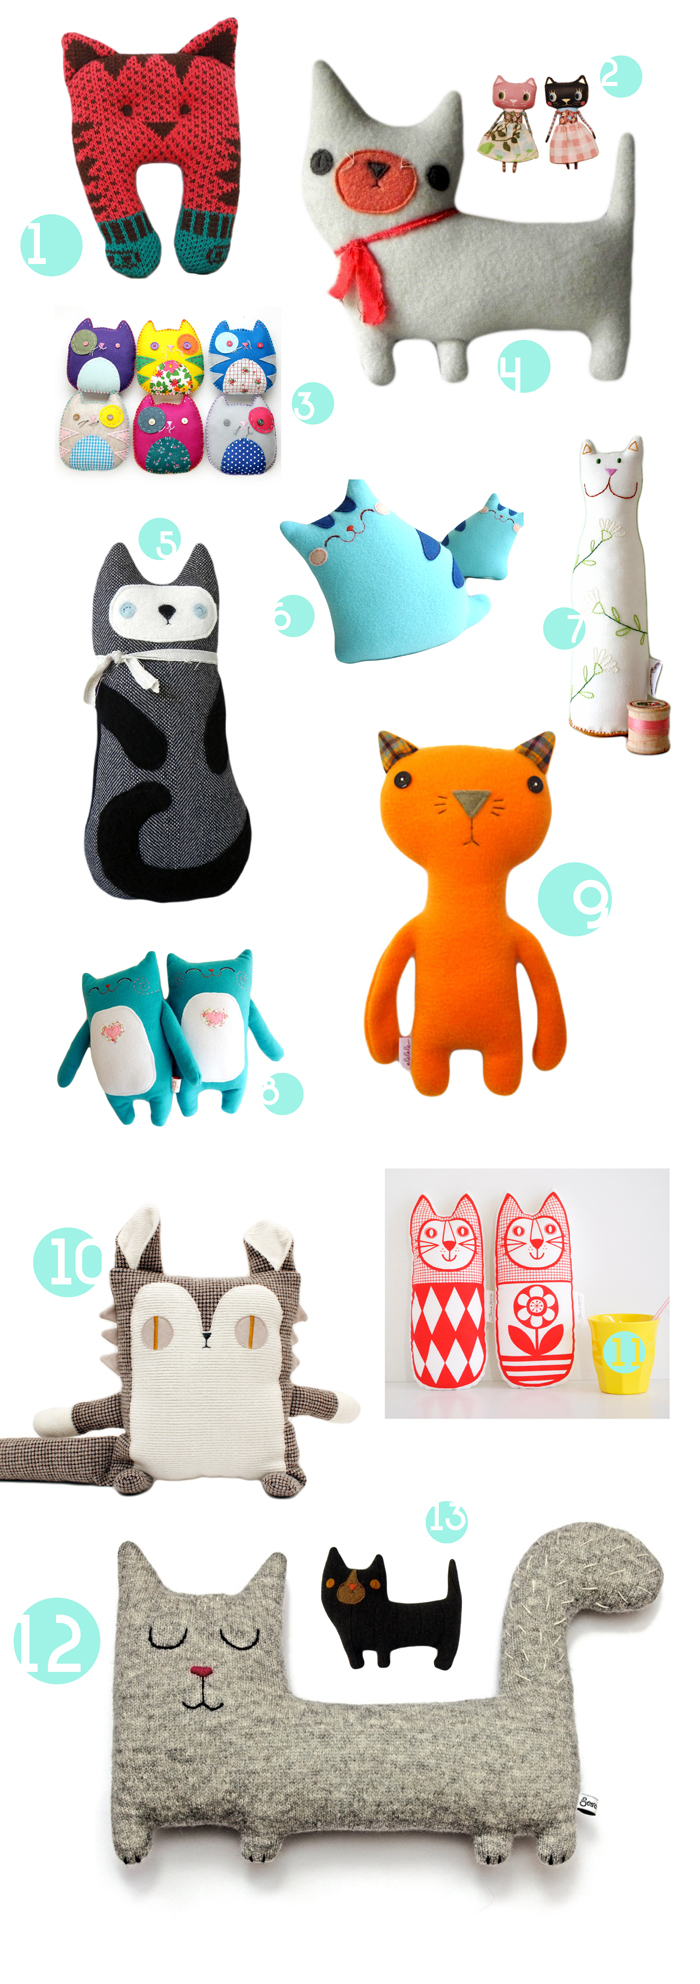 Cat plush etsy selection